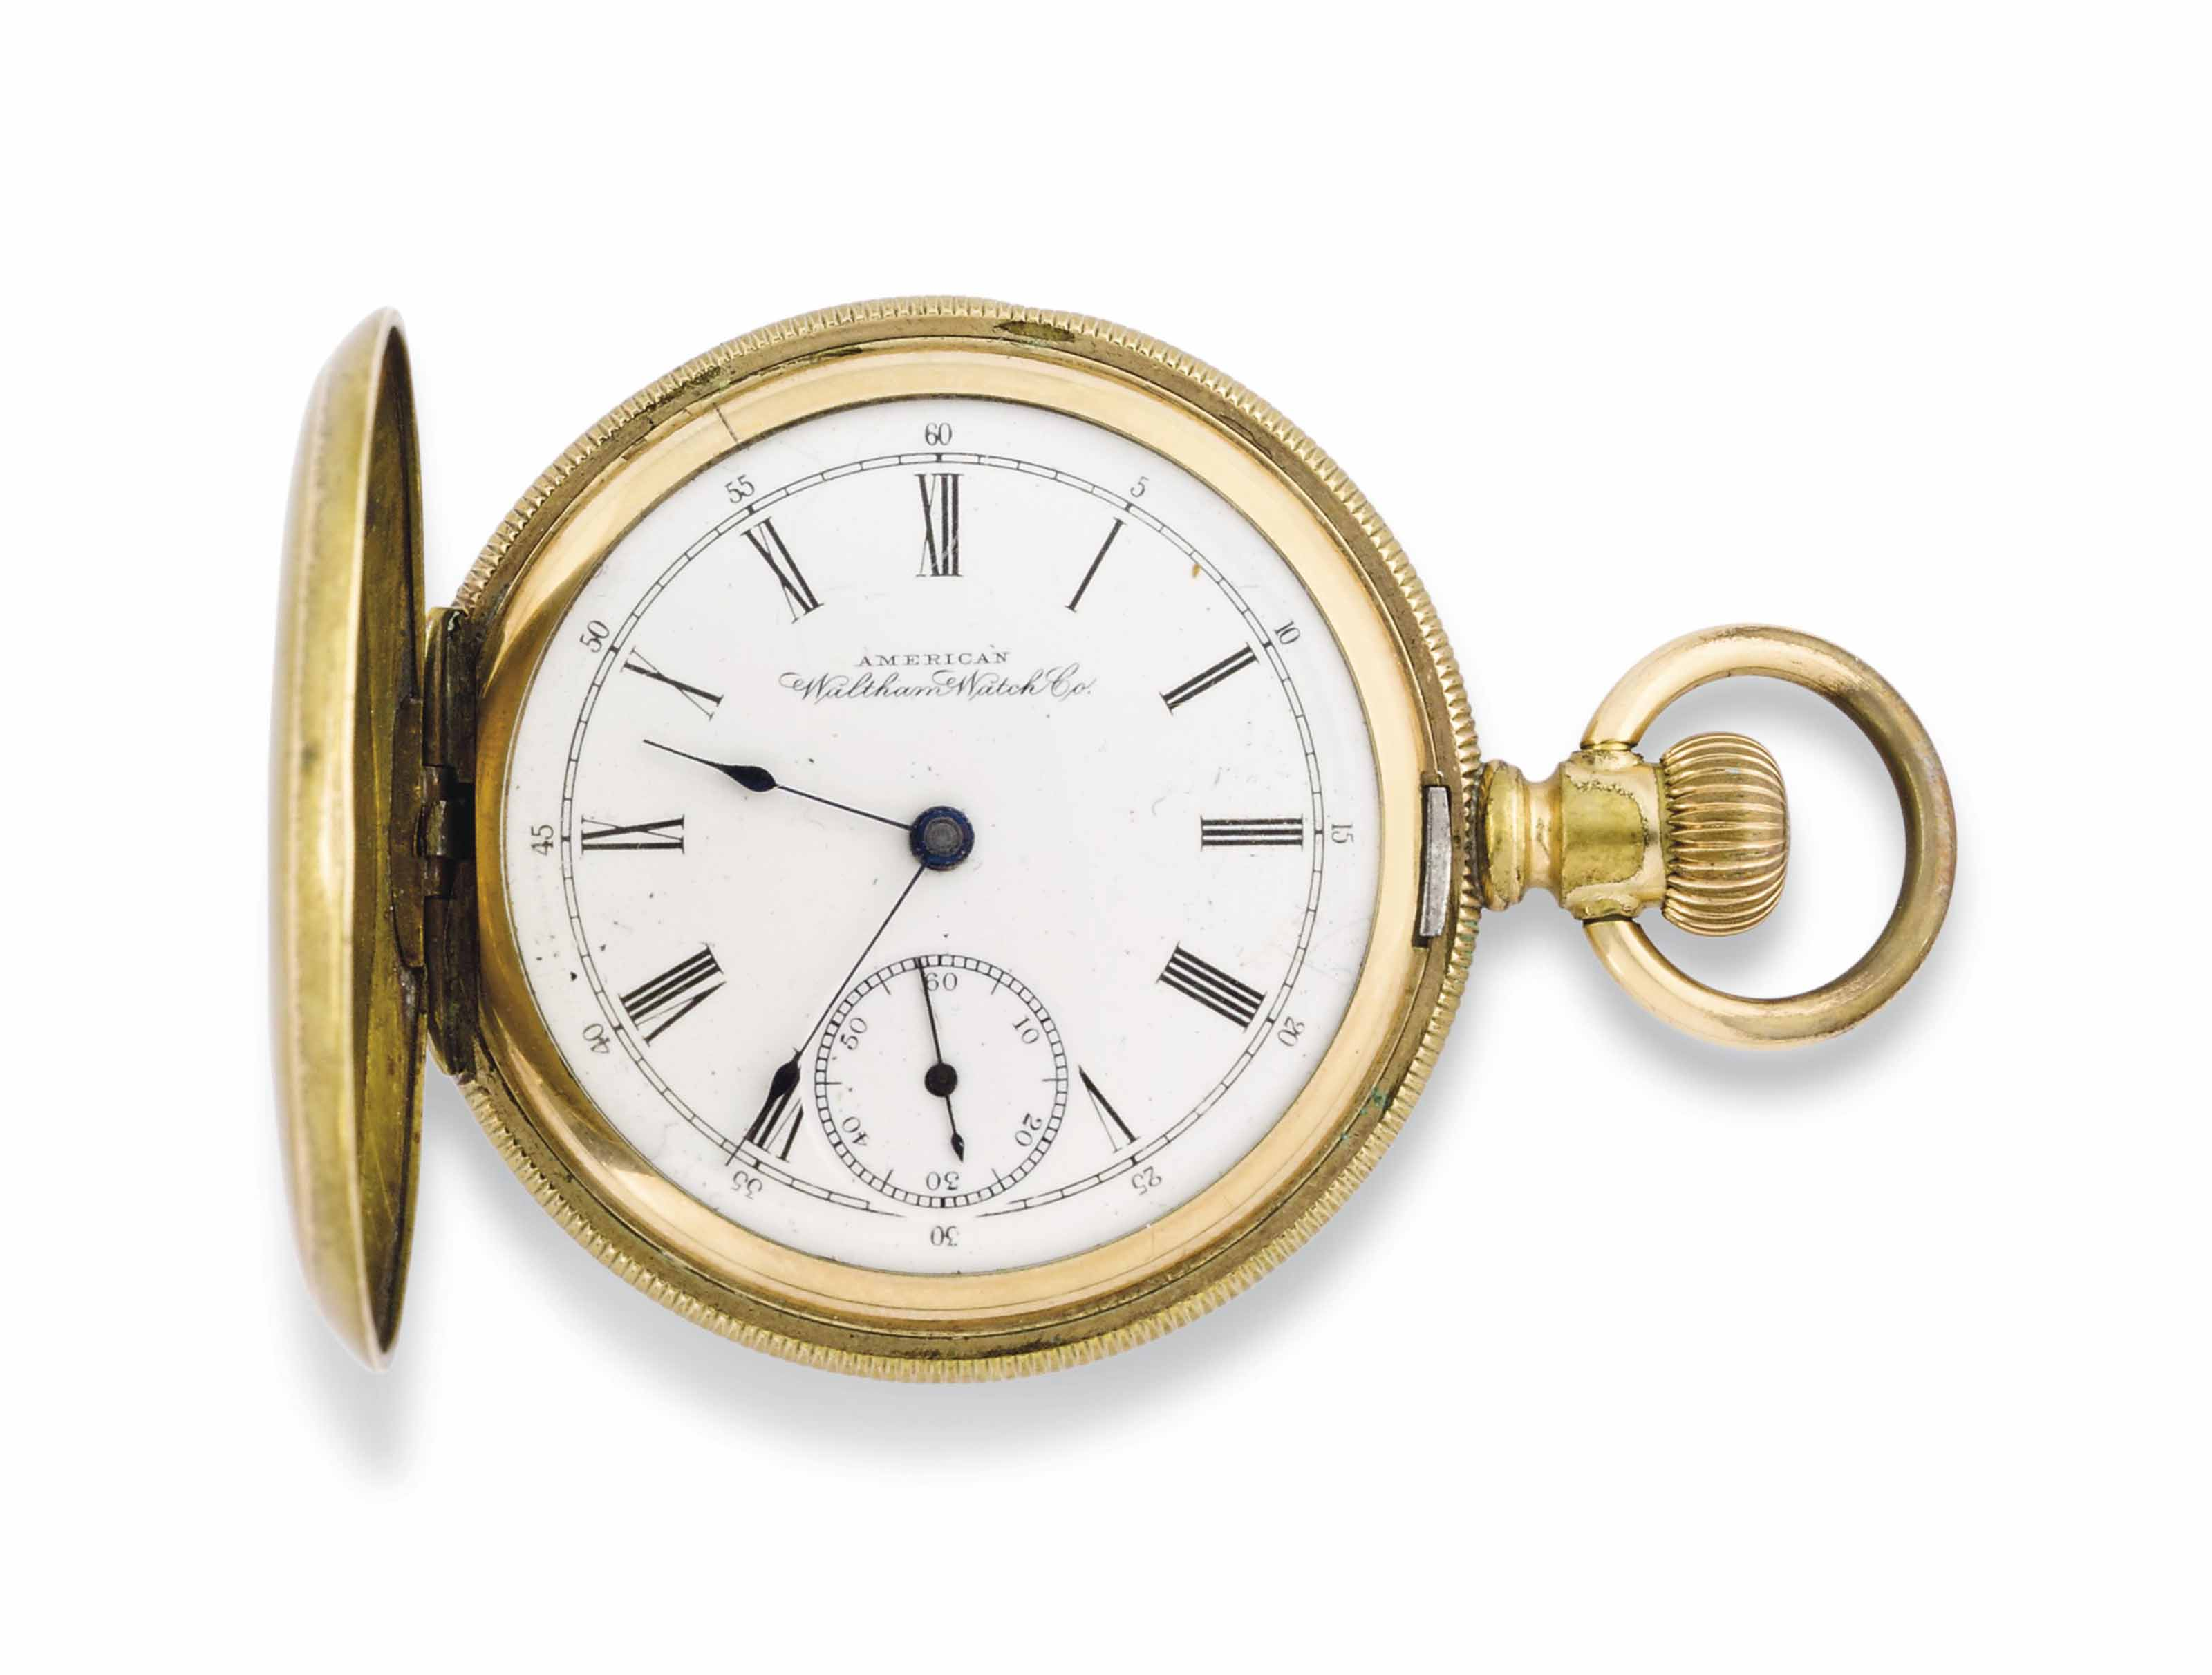 DR HAWLEY HARVEY CRIPPEN, (1862-1910) A GOLD FILLED HUNTER CASE KEYLESS LEVER POCKET WATCH